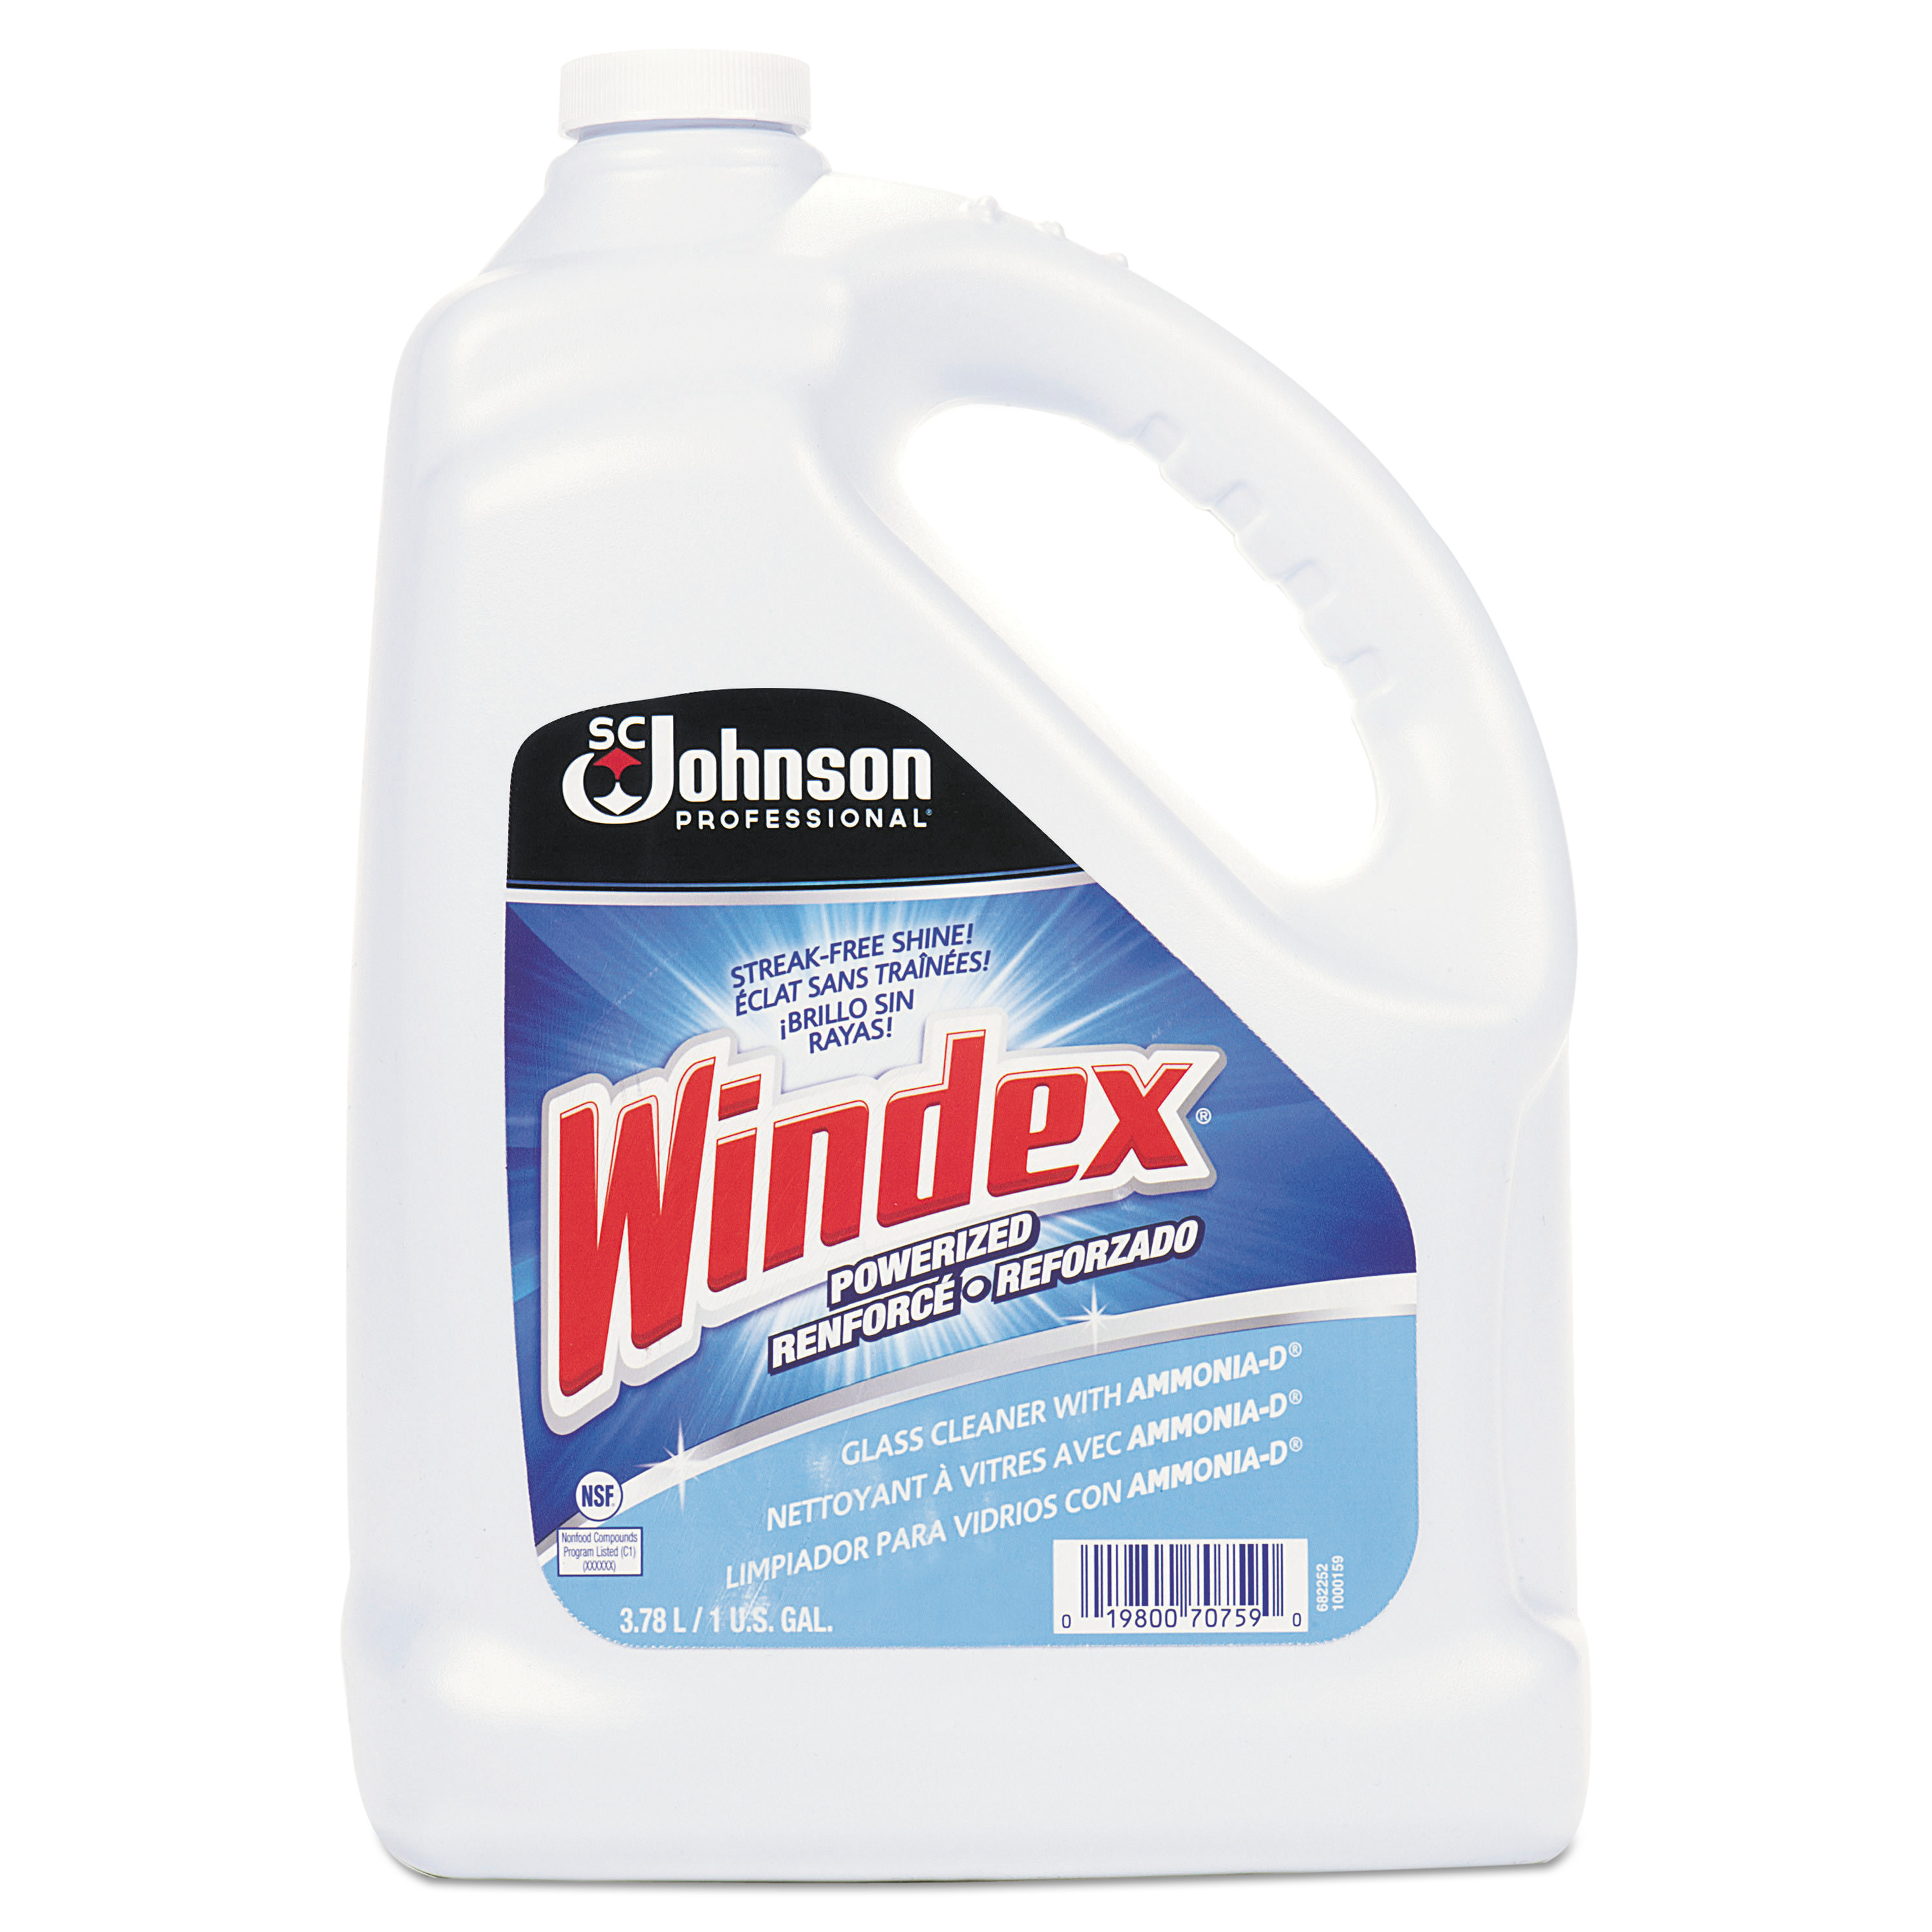 Windex Glass Cleaner with Ammonia-D, 1gal Bottle, 4/Carton -SJN696503